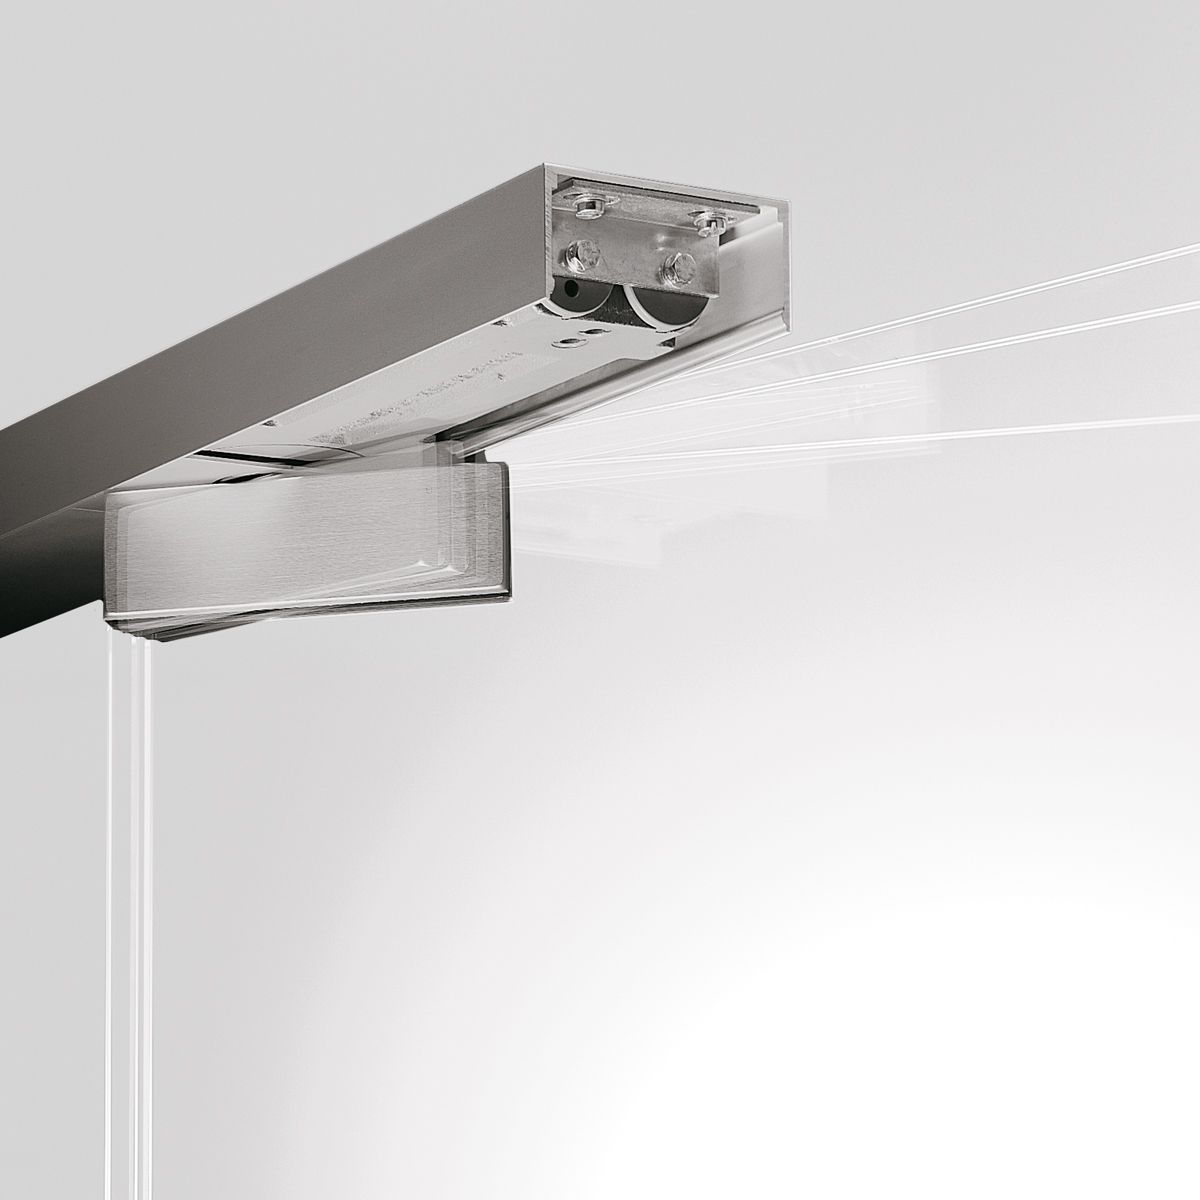 With Concealed transom Door Closer & DORMA RP | Patch Fittings for Double Action Doors with Transom ...